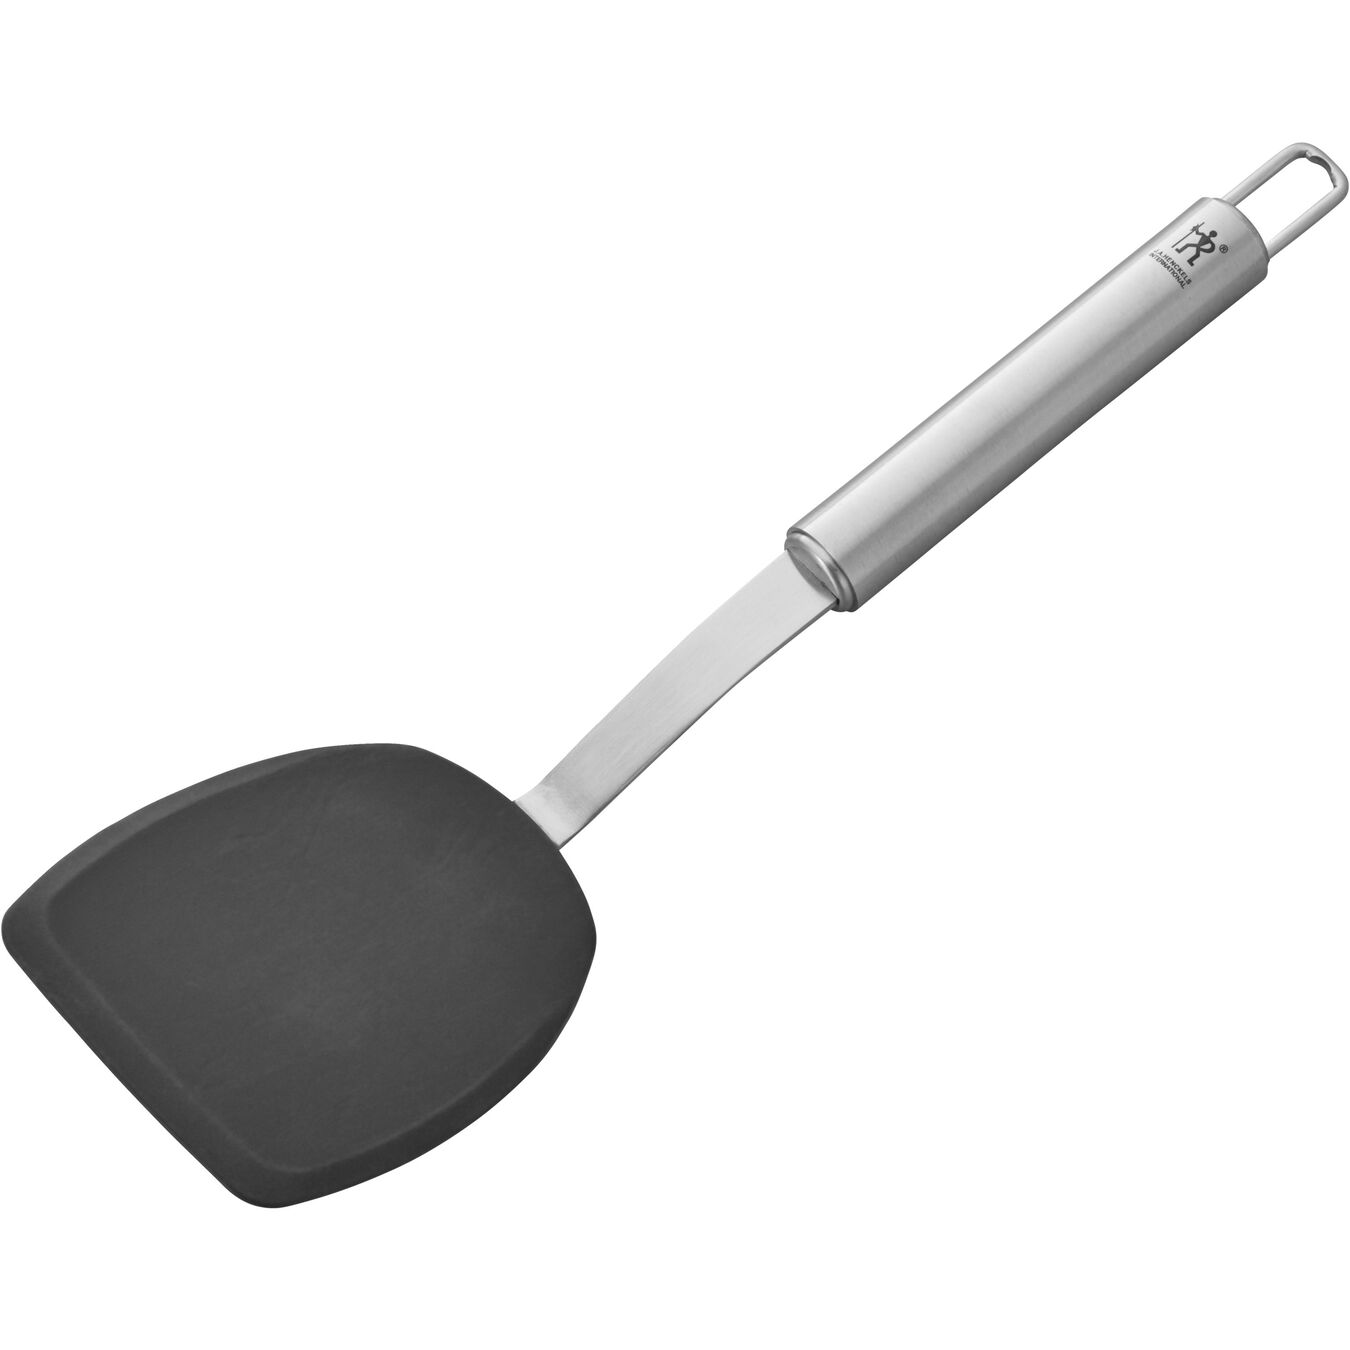 Stainless Steel Silicone Turner,,large 2